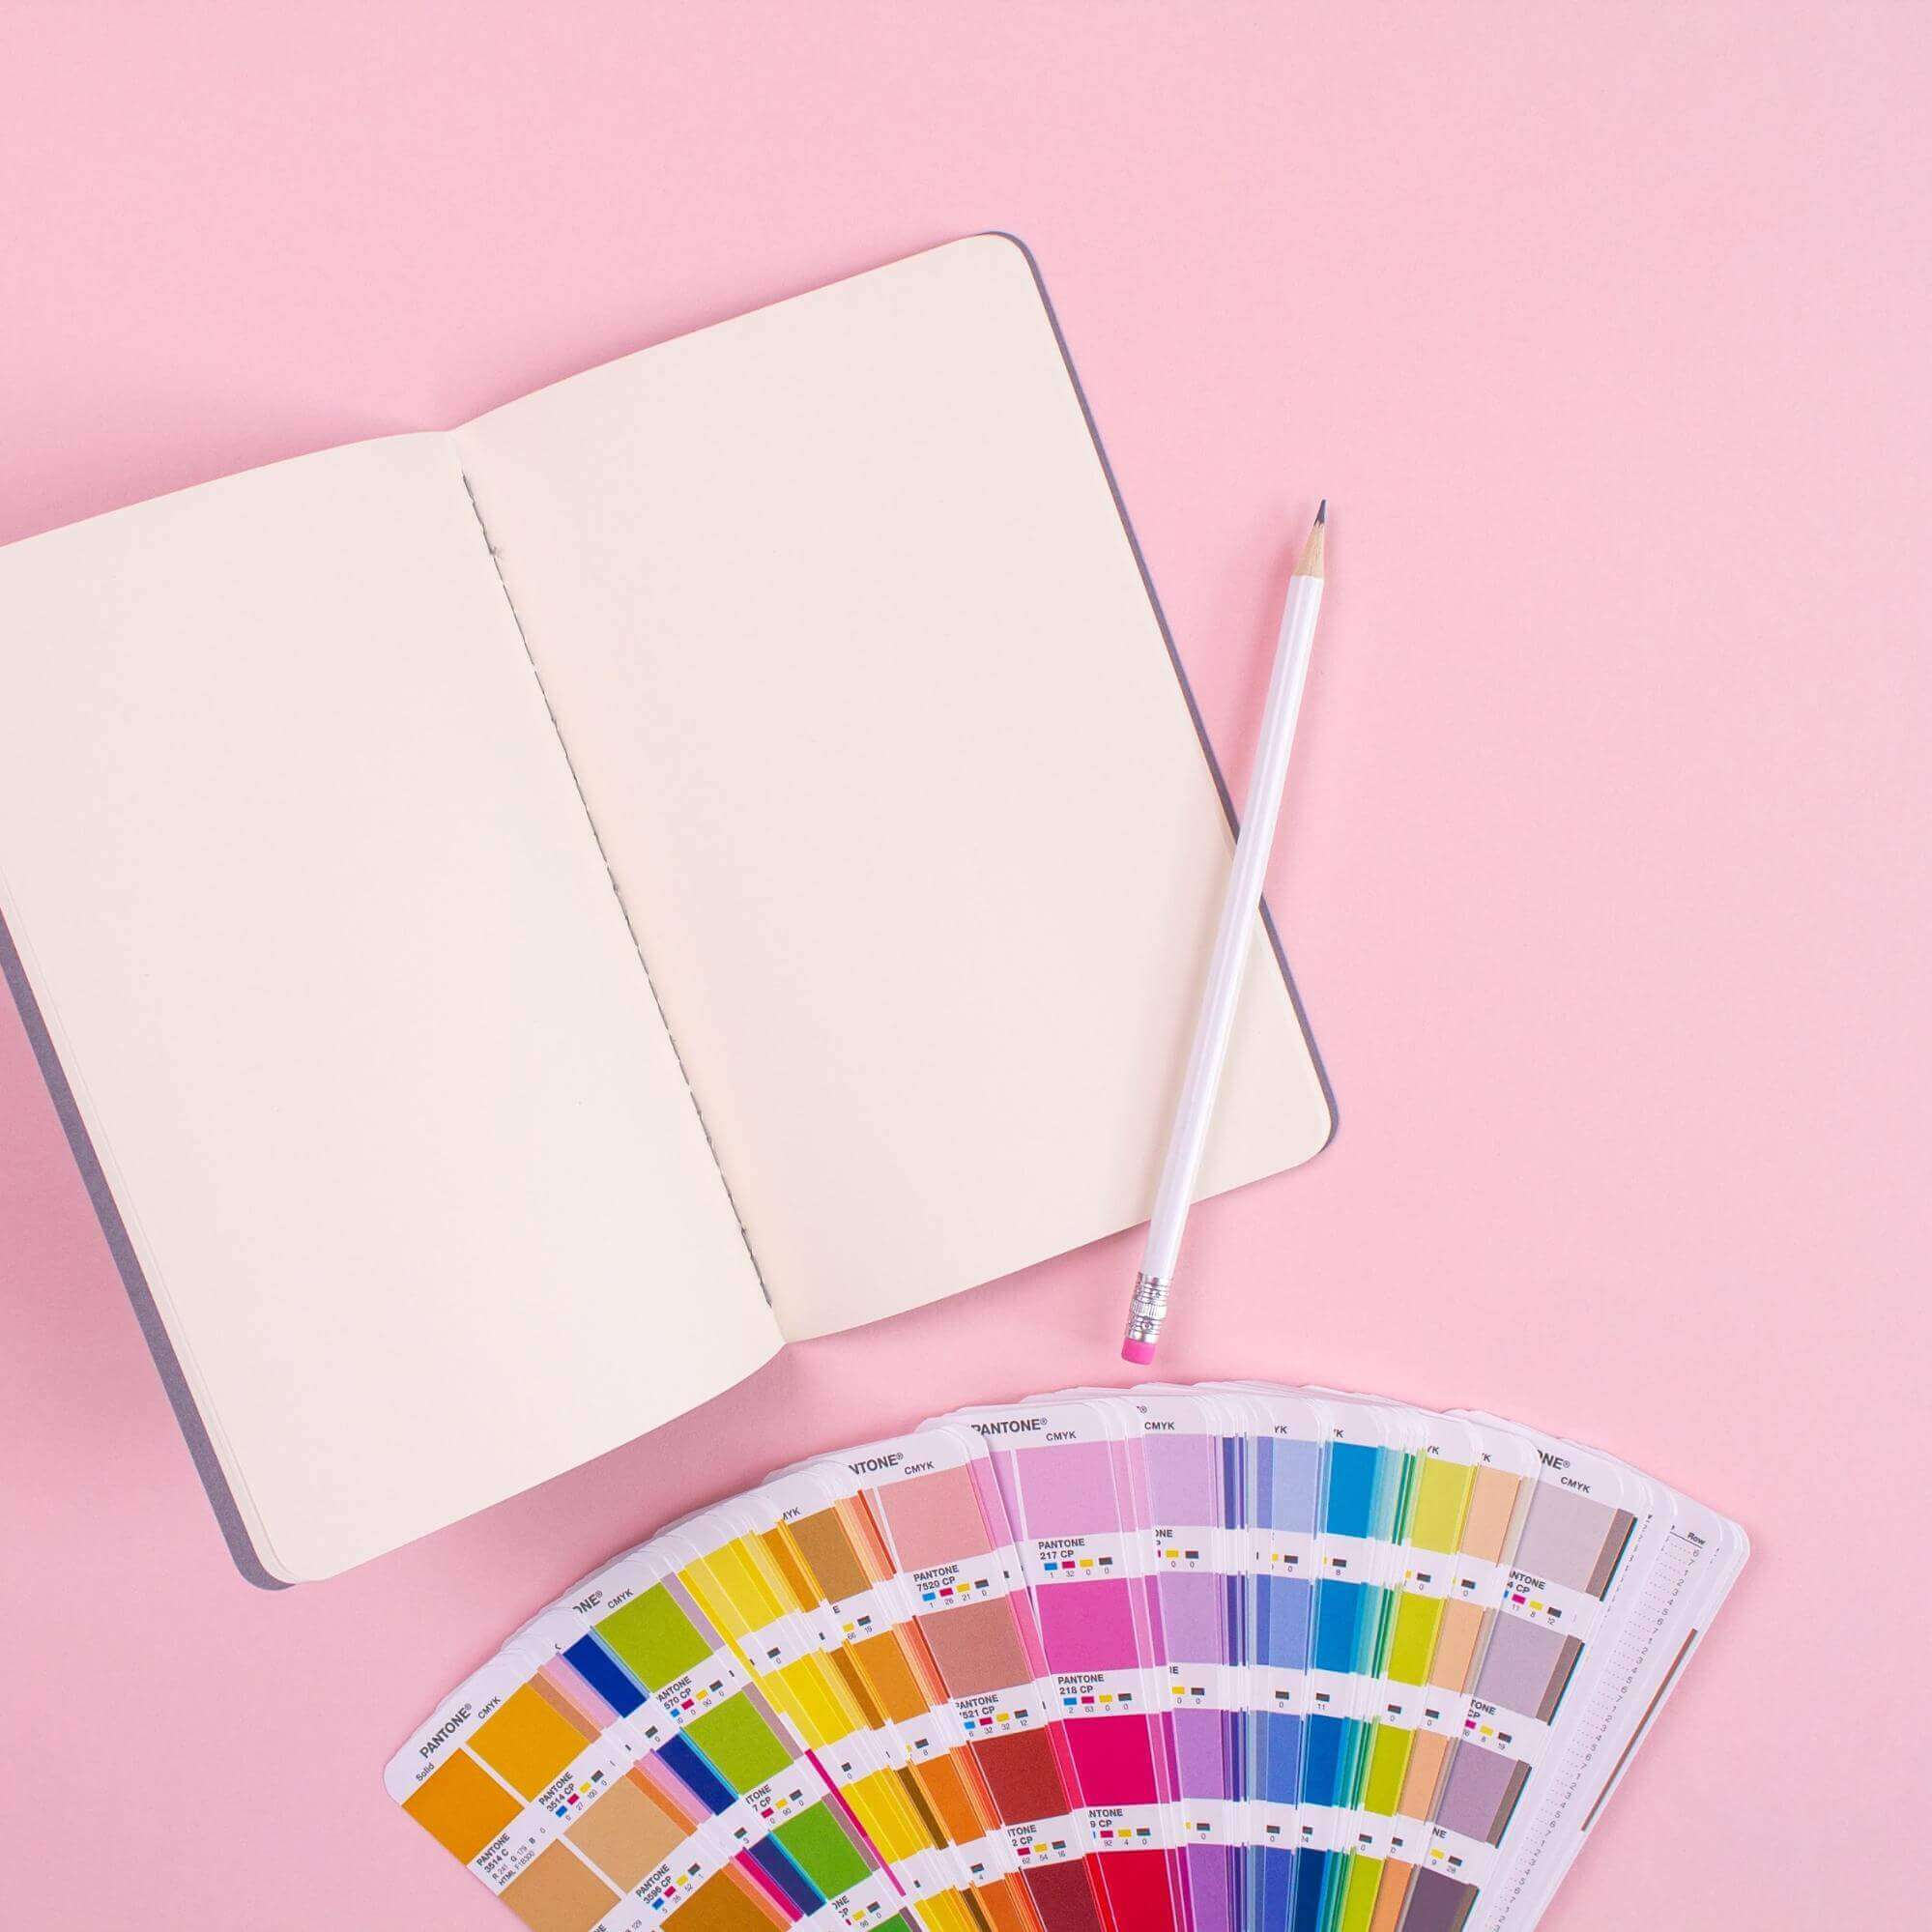 a photo of a notebook, a pencil and a color palette, indicating a design process.